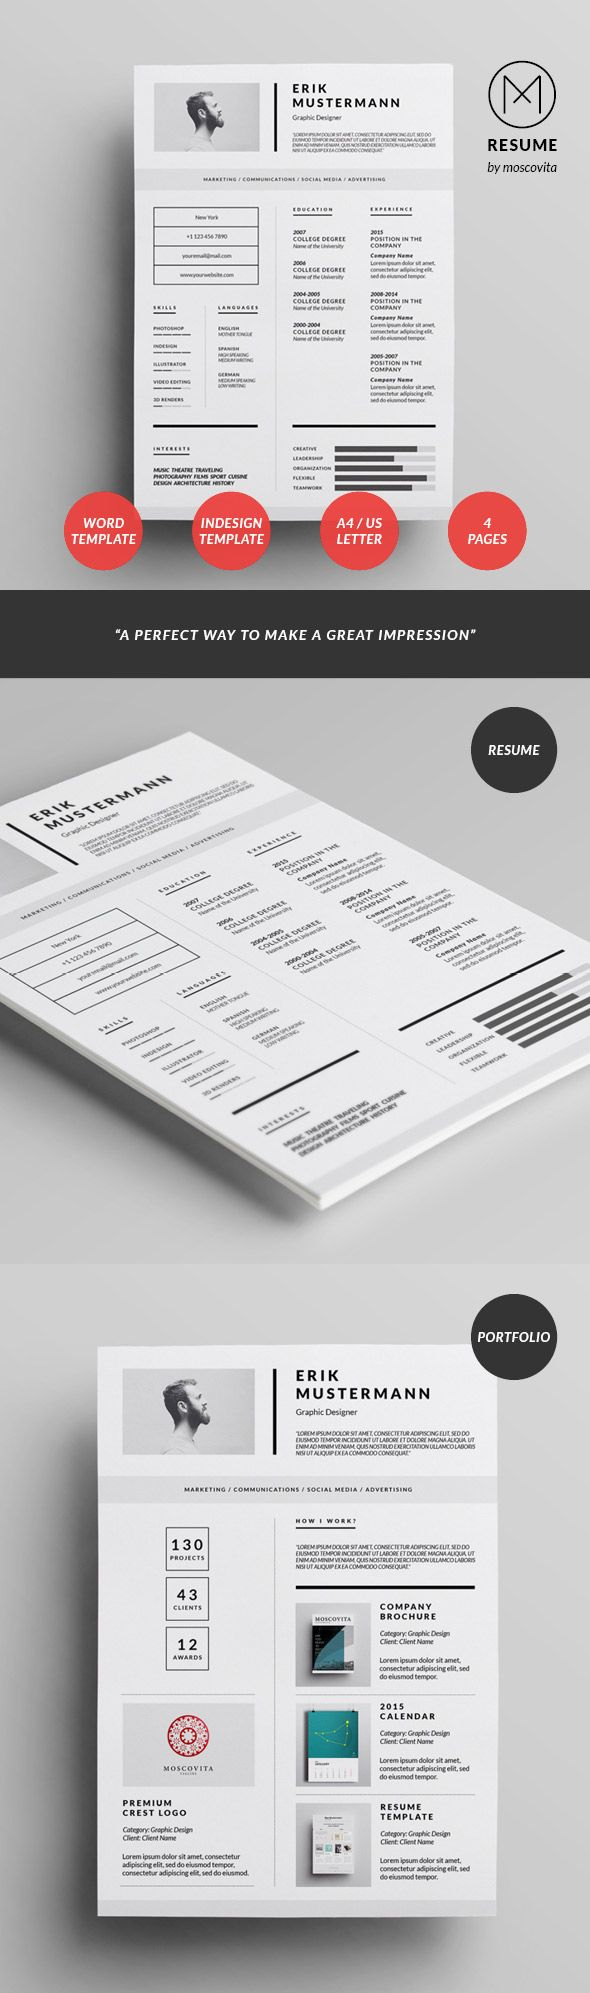 are you eyeing a brand new place  in that case is your resume design present  and can it